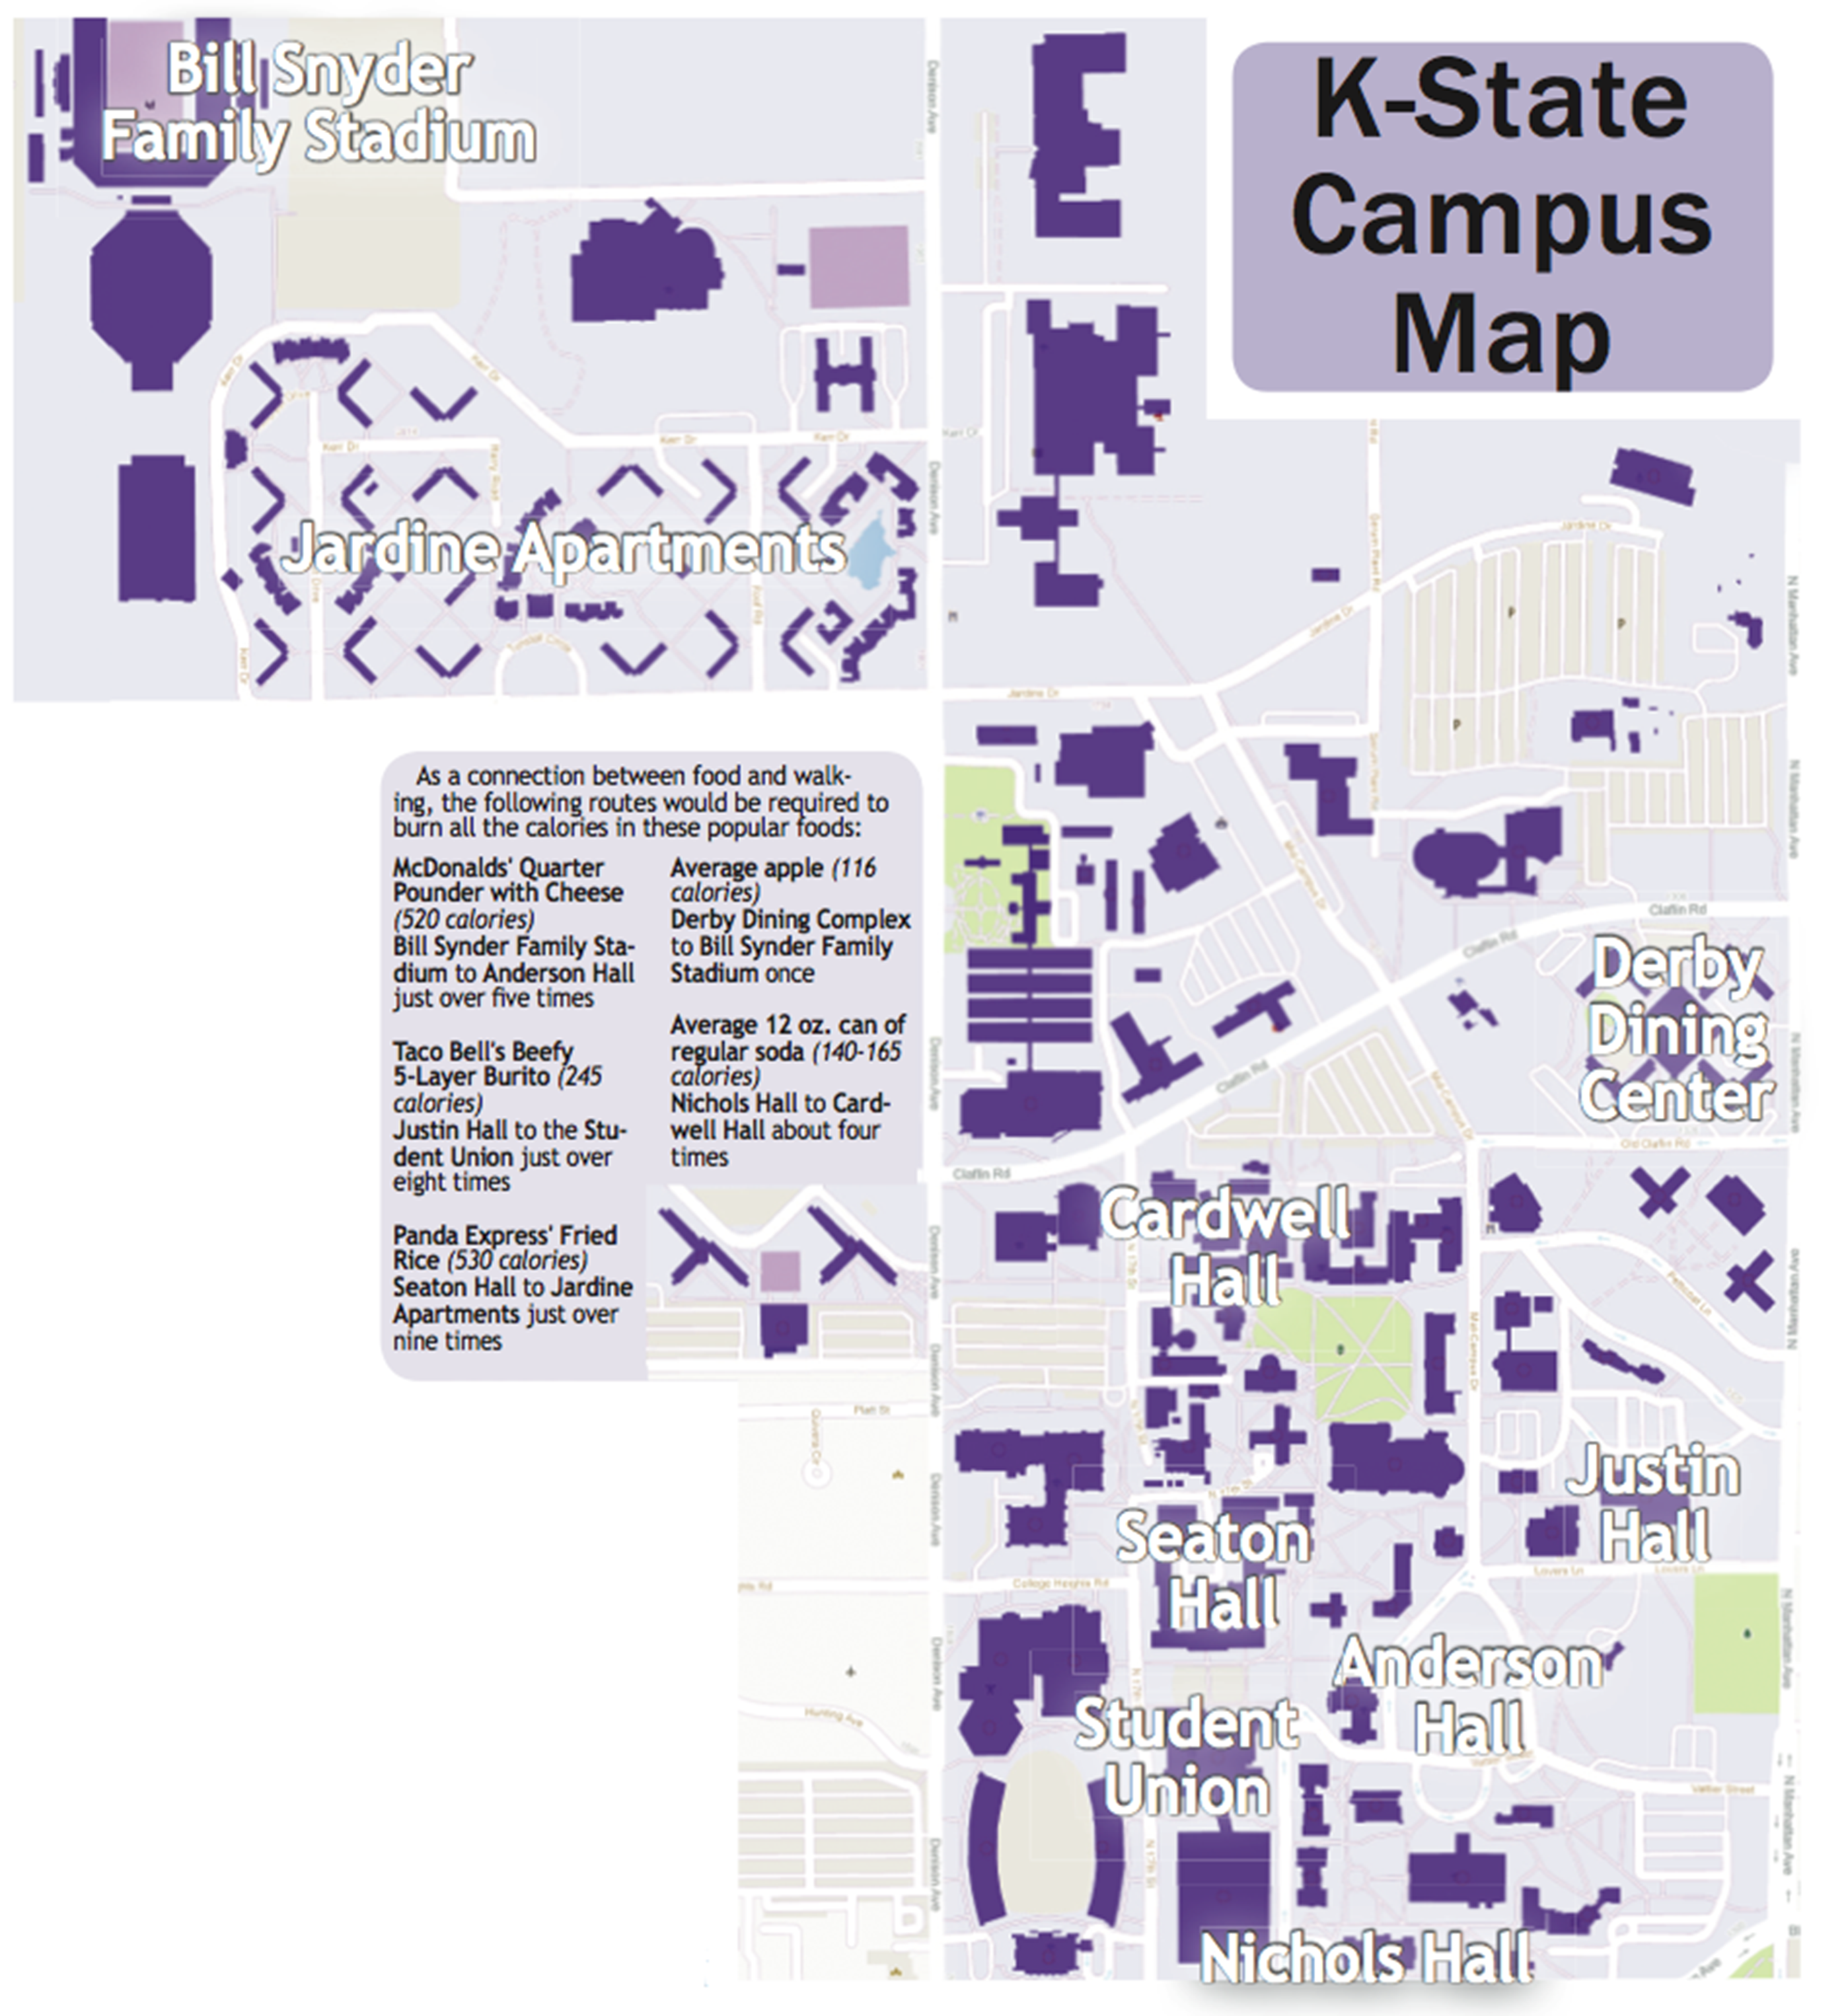 Club creates campus calorie map; mobile app in works | The Collegian